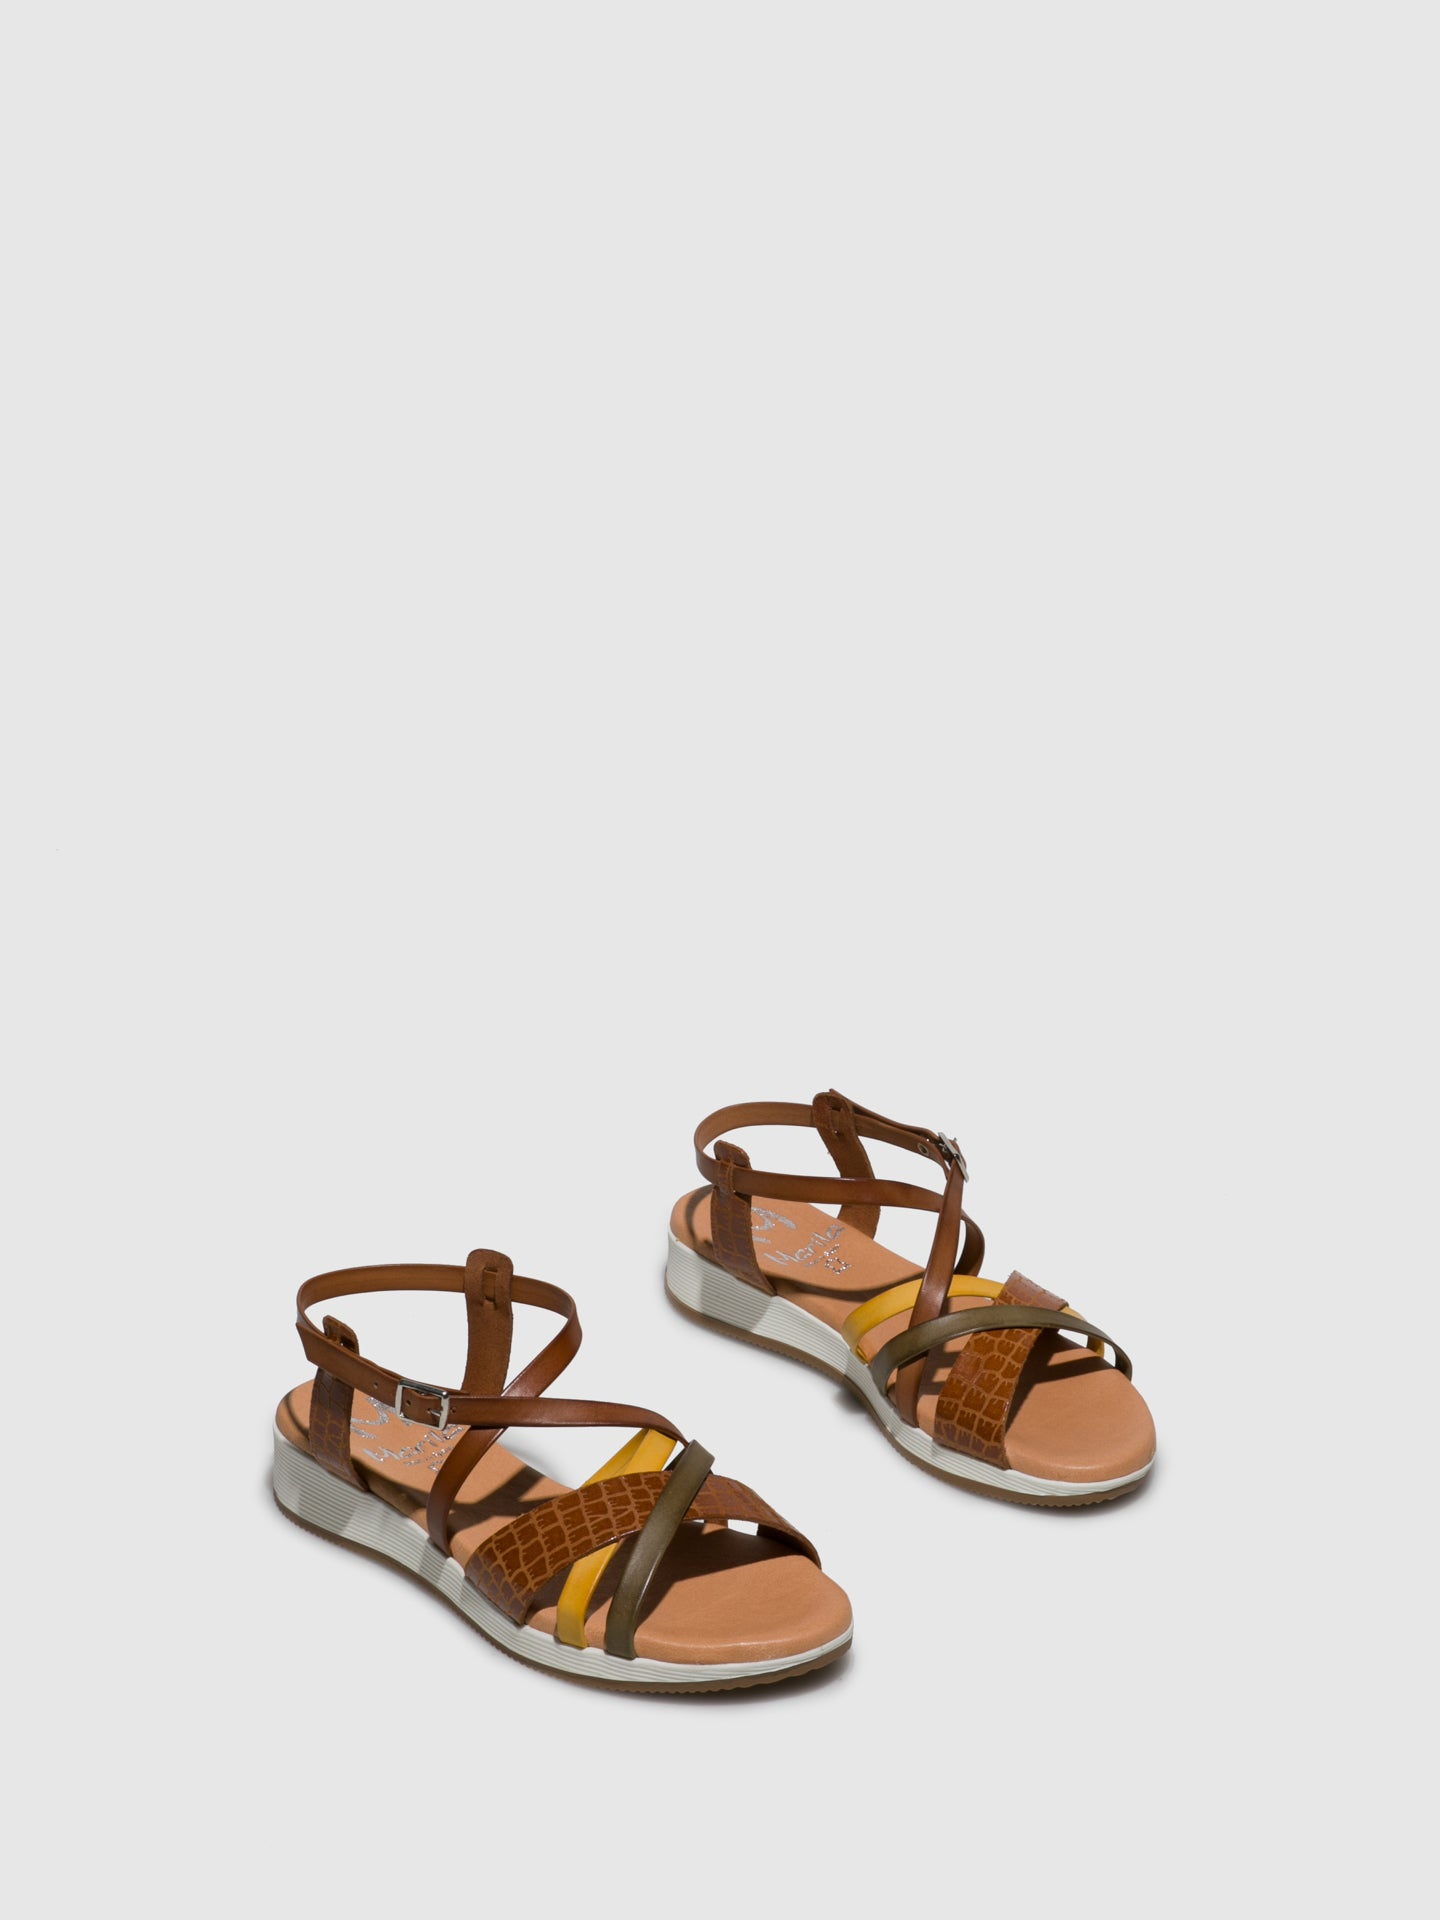 Marila Shoes Brown Crossover Sandals